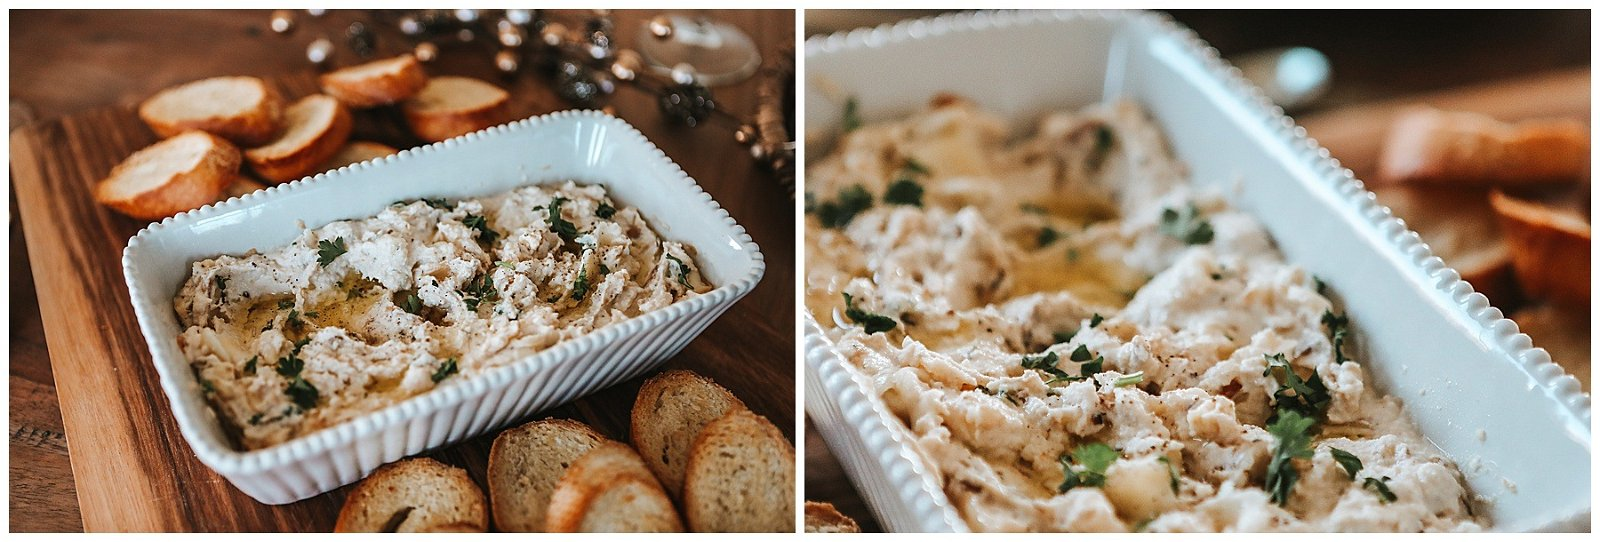 Caramelized Onion & rosemary Ricotta Dip